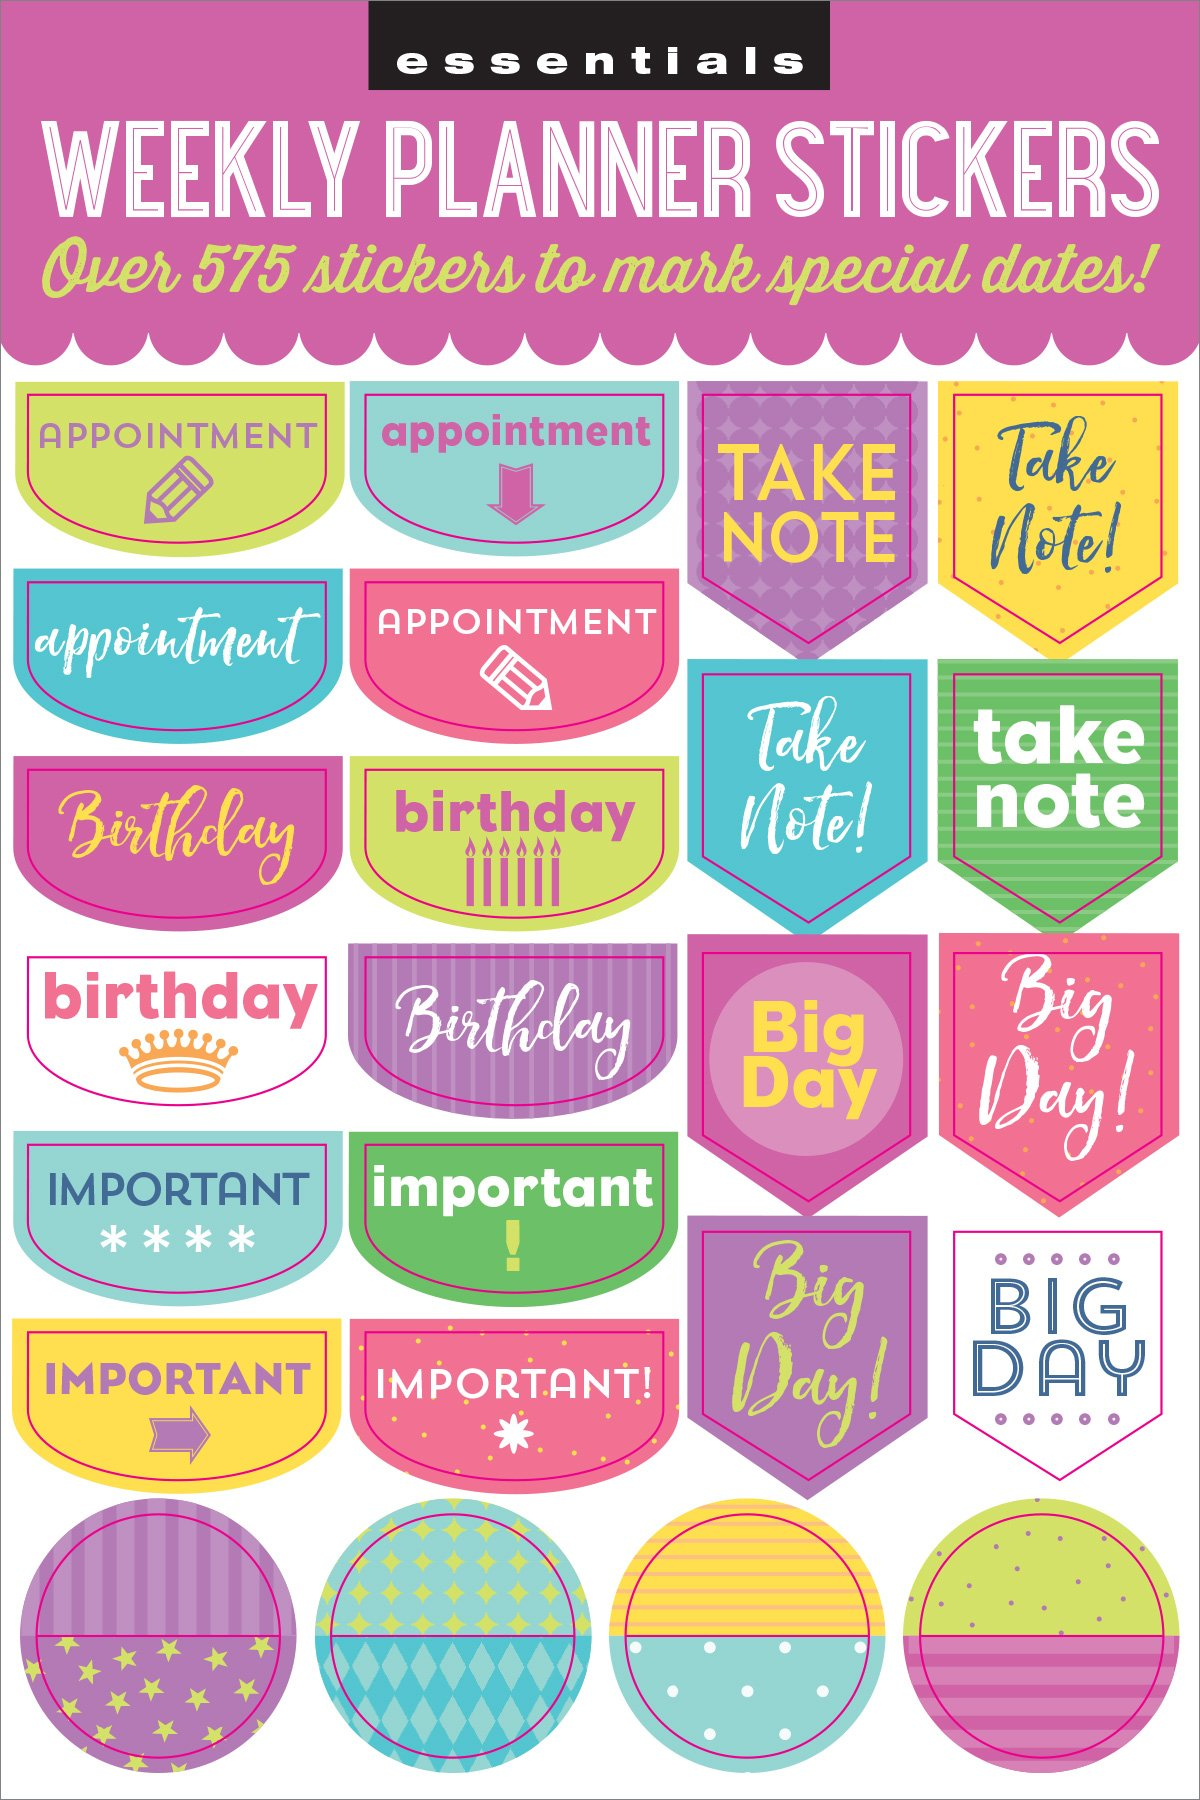 Essentials Weekly Planner Stickers Set of 575 Stickers ...